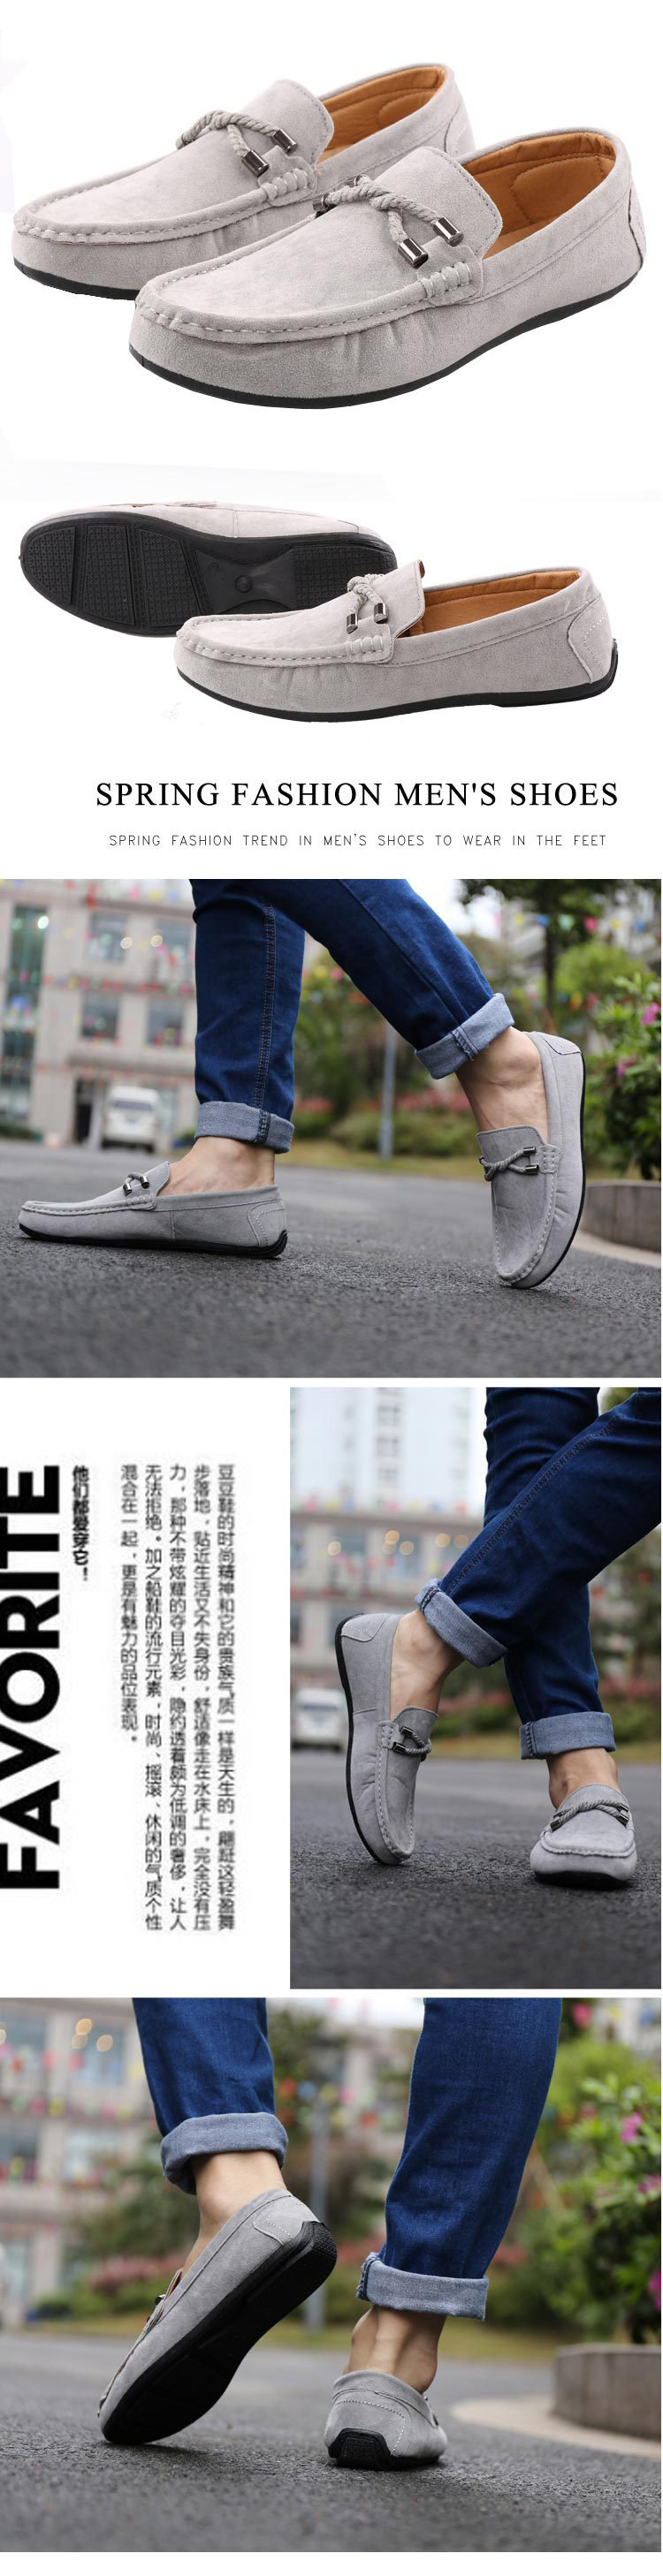 HTB14eGoUpzqK1RjSZFoq6zfcXXaB UPUPER Spring Summer NEW Men's Loafers Comfortable Flat Casual Shoes Men Breathable Slip-On Soft Leather Driving Shoes Moccasins